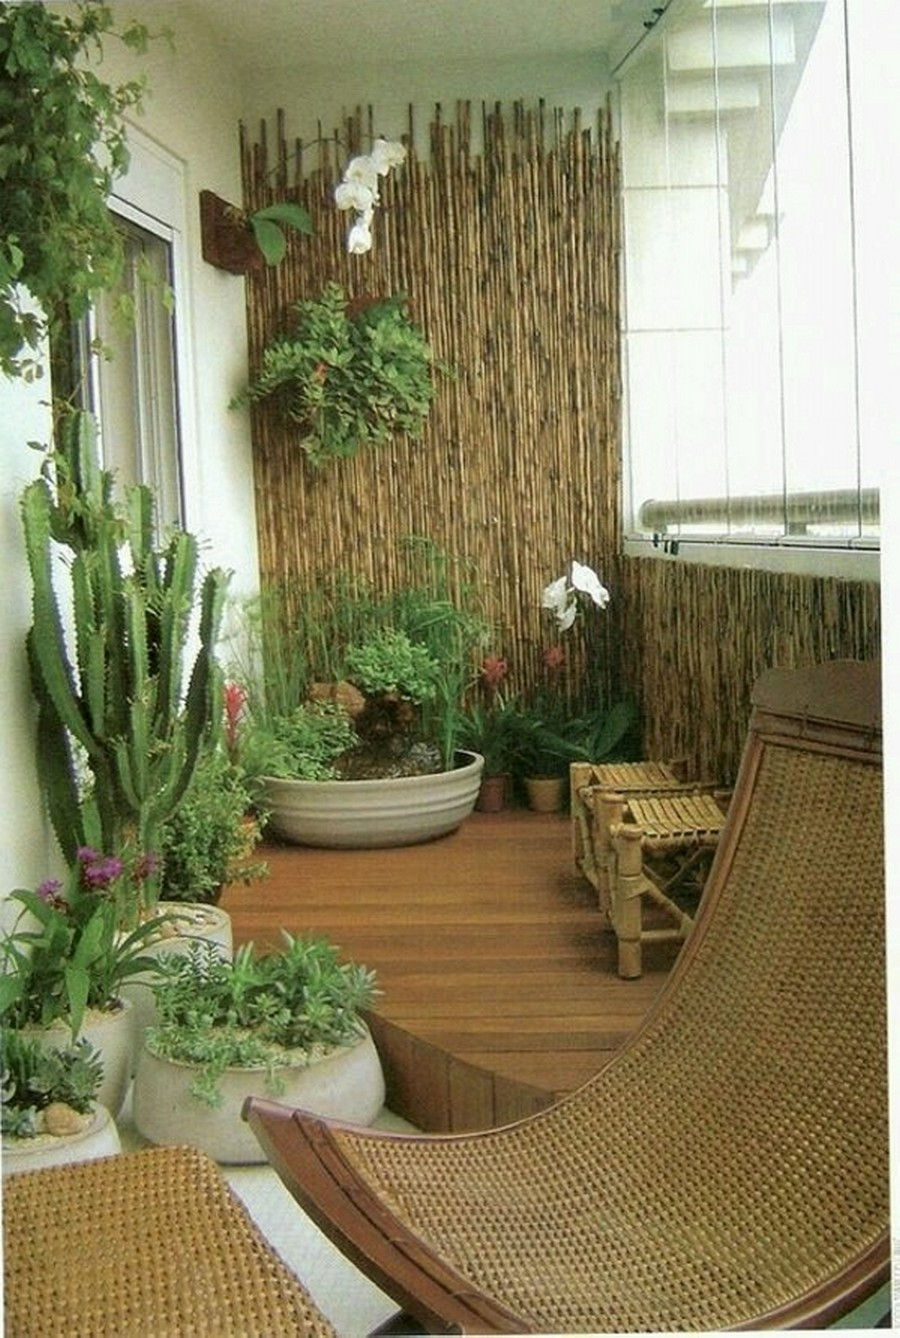 10 clever ways to decorate your balcony area recycled things for Balcony garden design ideas